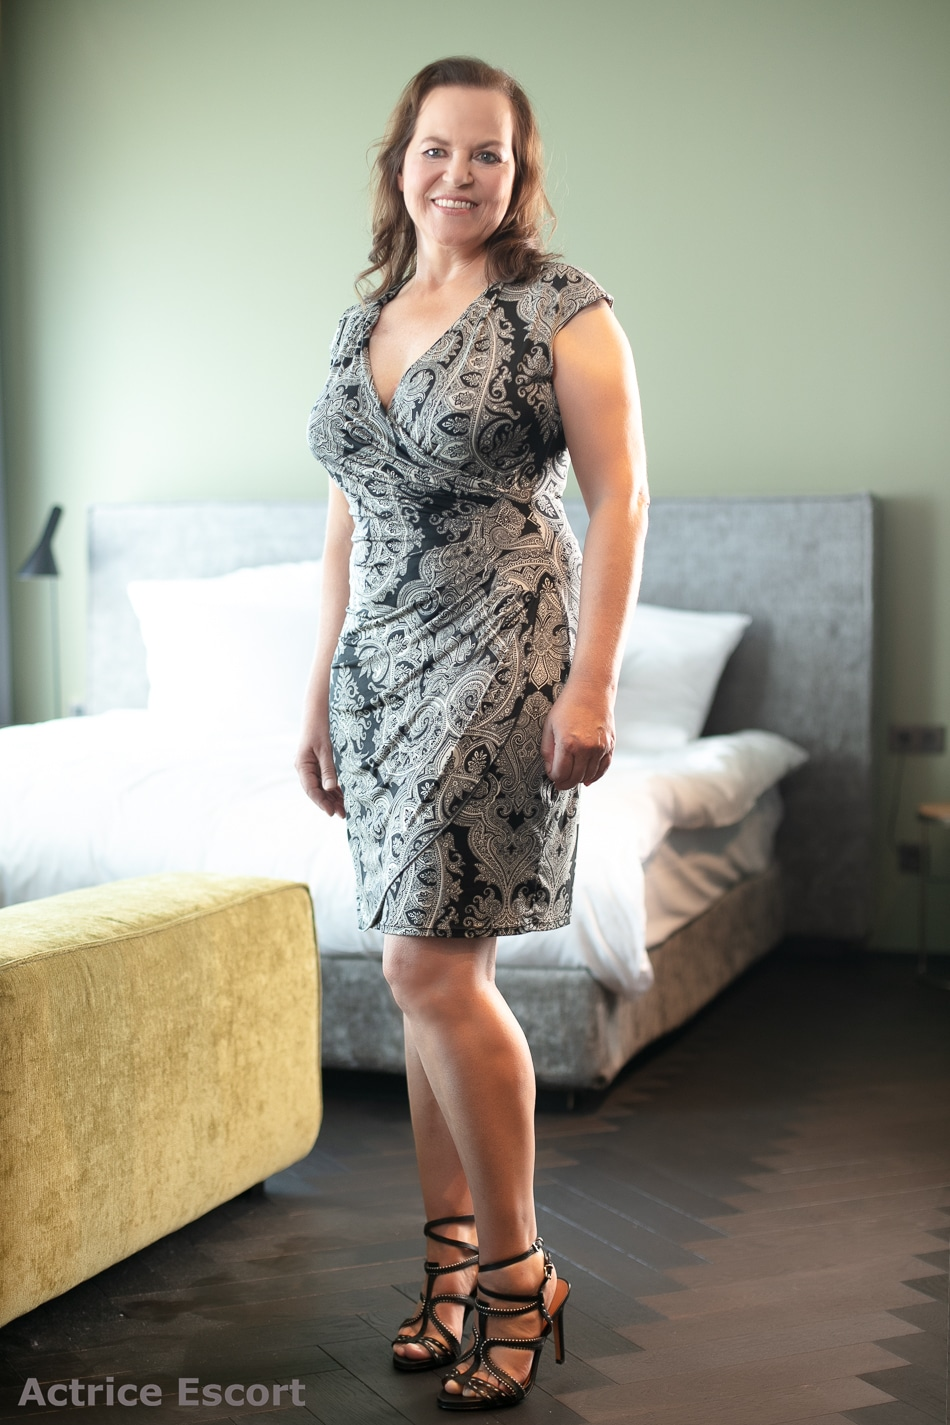 Bettina Escortservice Duesseldorf(3)